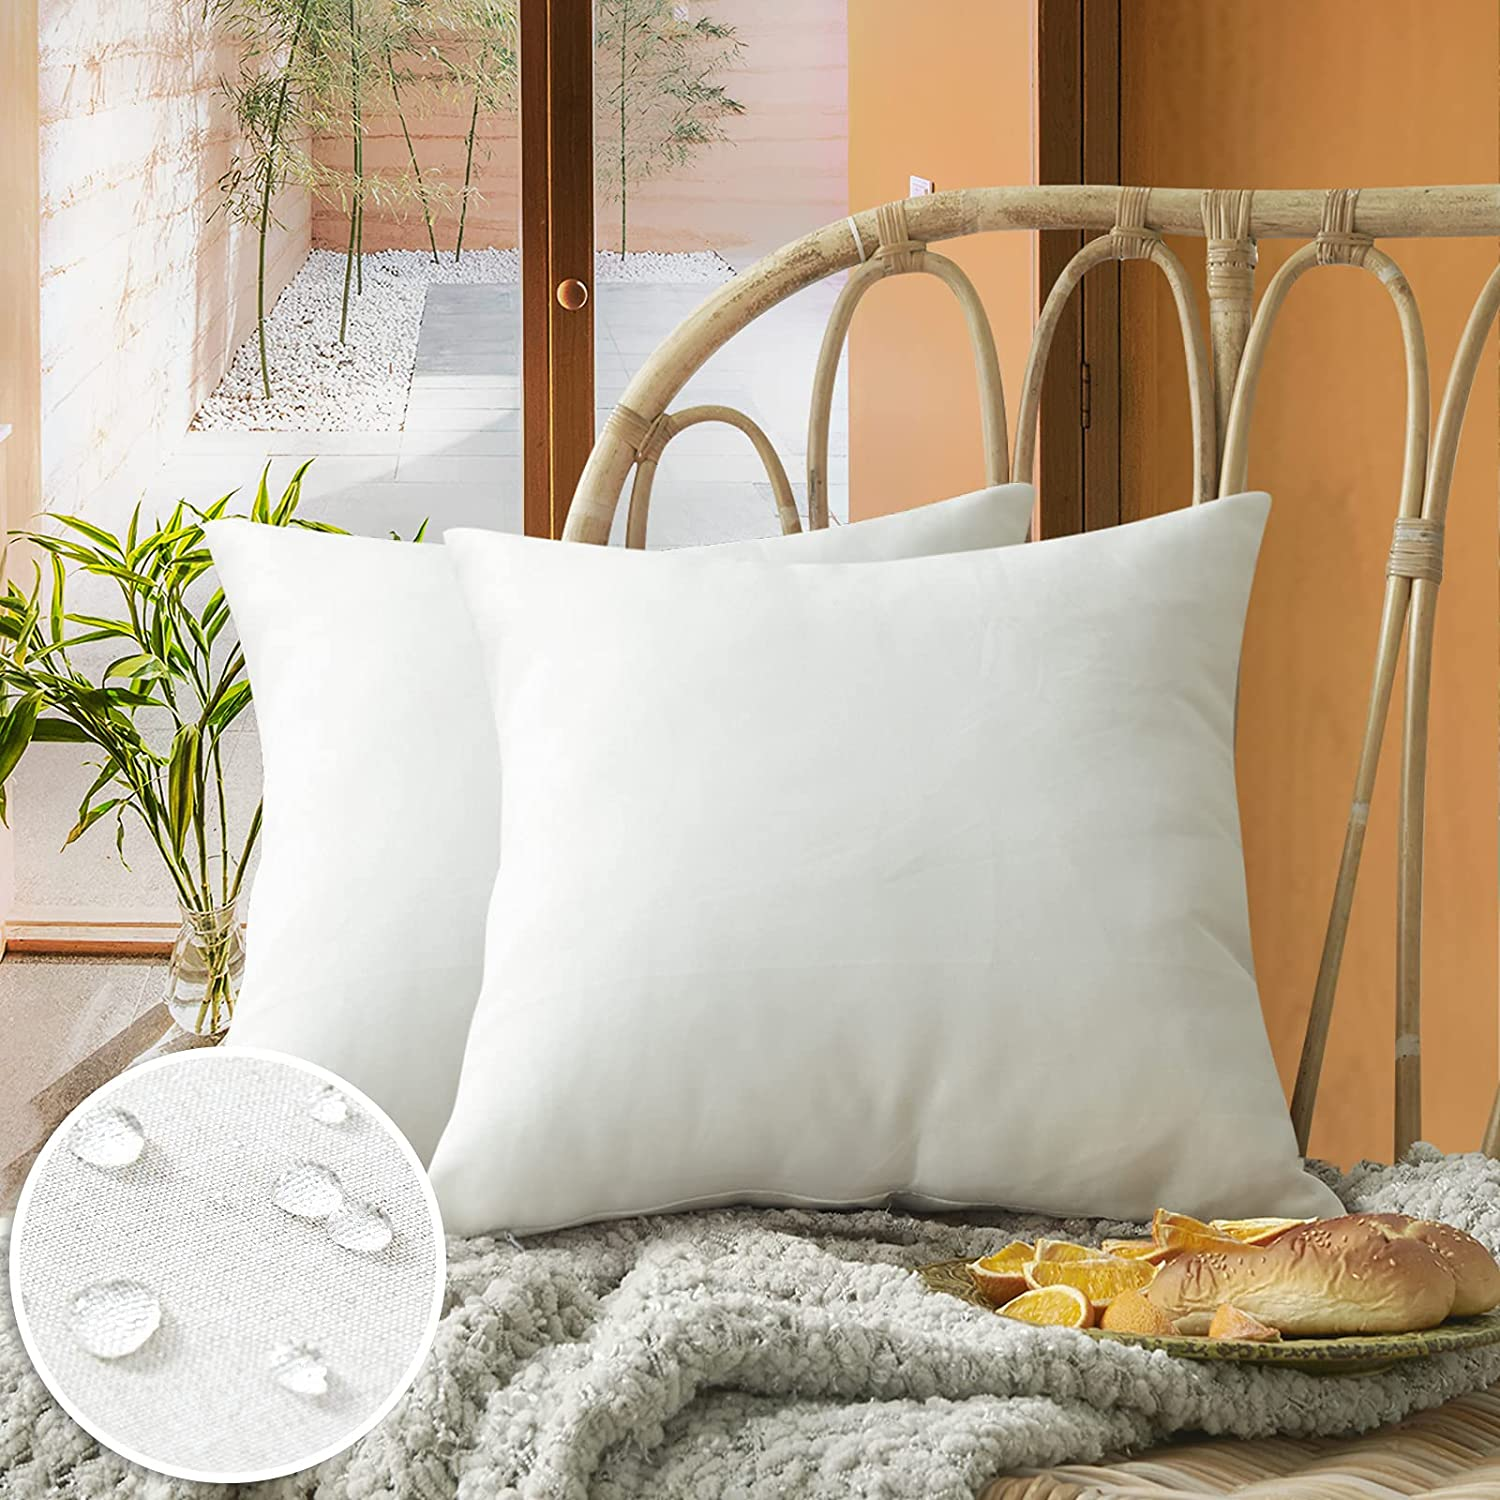 FEVERQIYI Outdoor SALENEW very popular! Waterproof Throw Covers Pillow Decorative Special price Squa